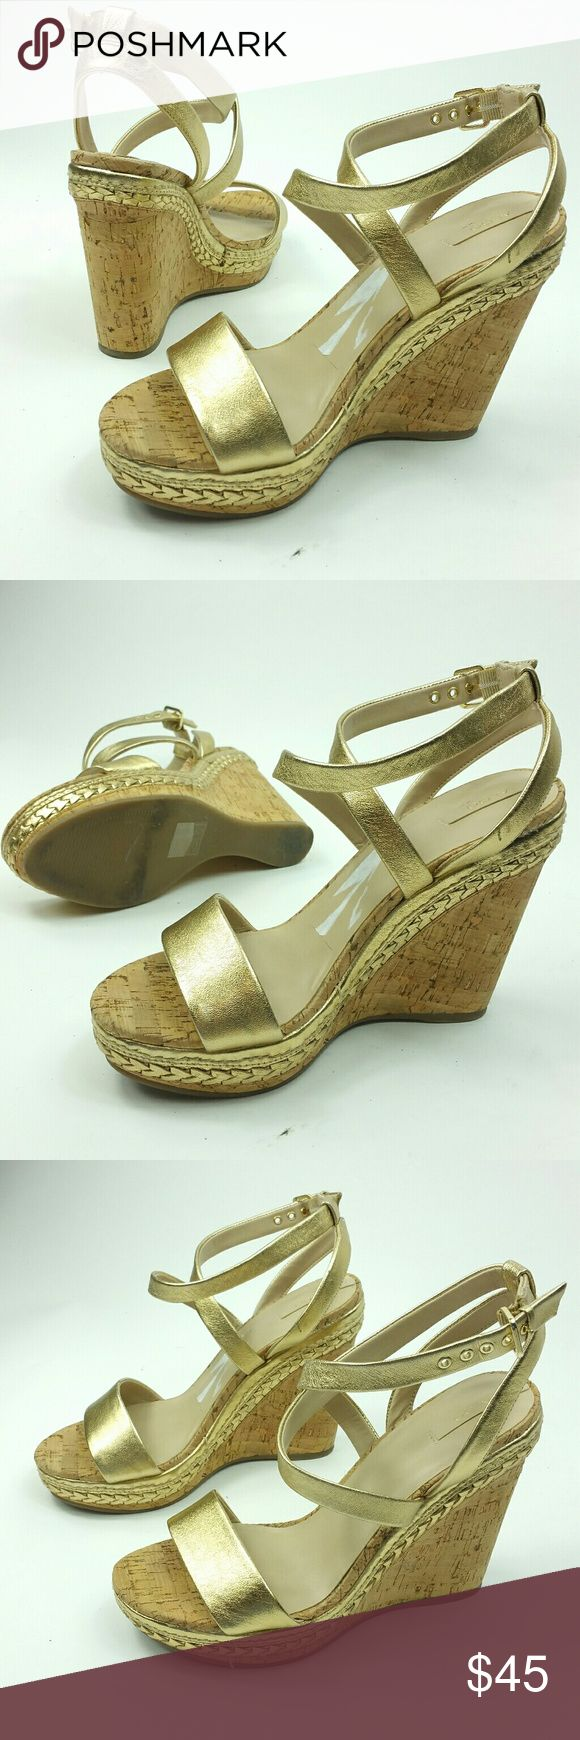 Aldo size 11 metalic gold wedge heels ankle strap Aldo size 11 metalic gold wedge heels ankle strap  Might mistake them as new  Flaws none other than the paper sticker on the sole needs to be fully removed  Heel height 5in Aldo Shoes Wedges